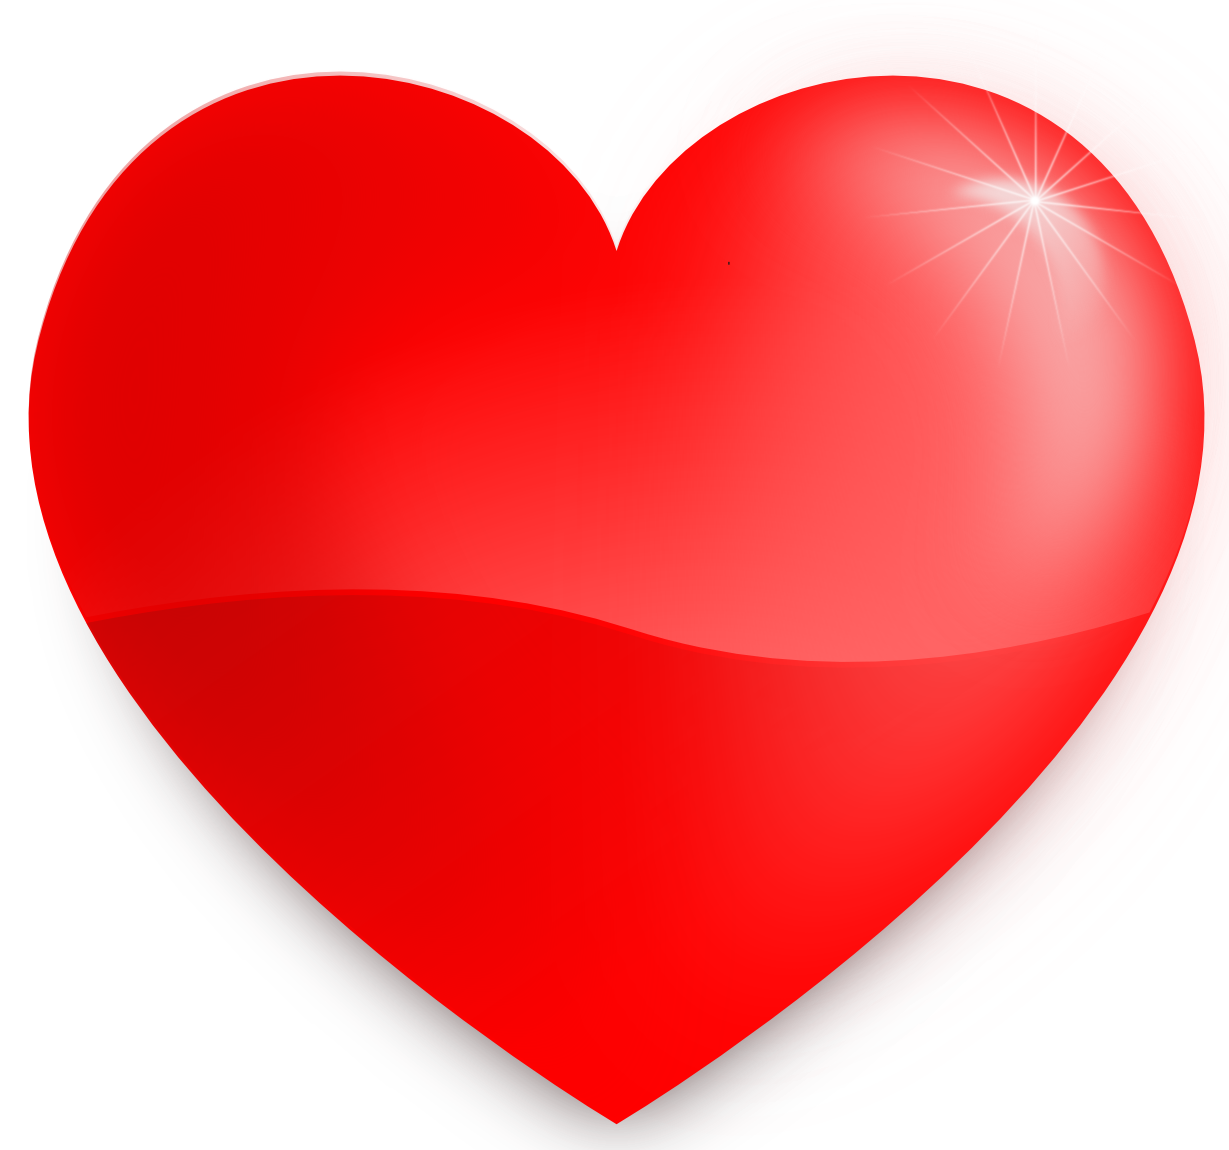 Valentines day heart png. Background image arts